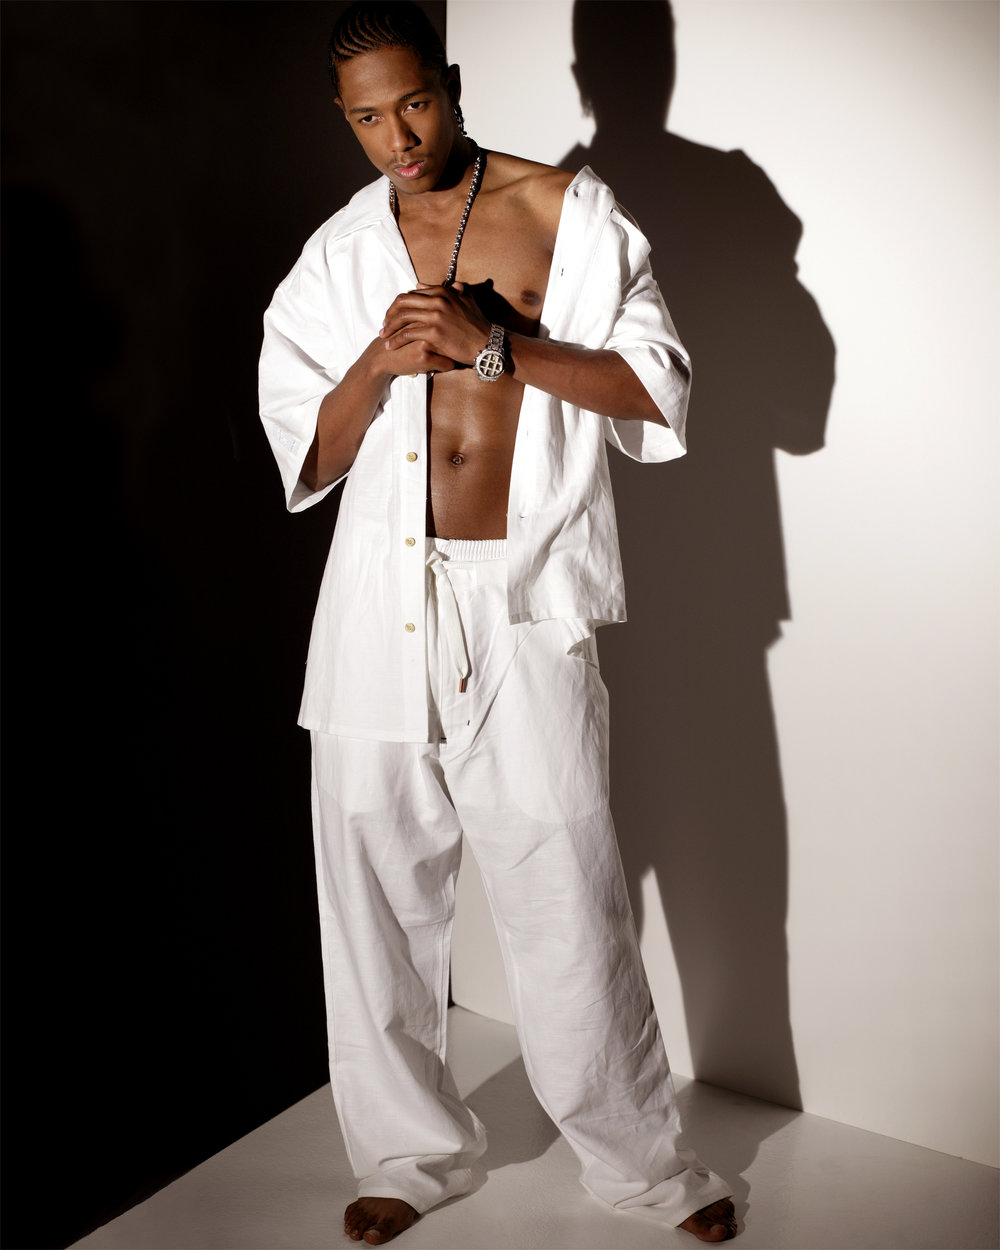 Nick Cannon 8x10.jpg